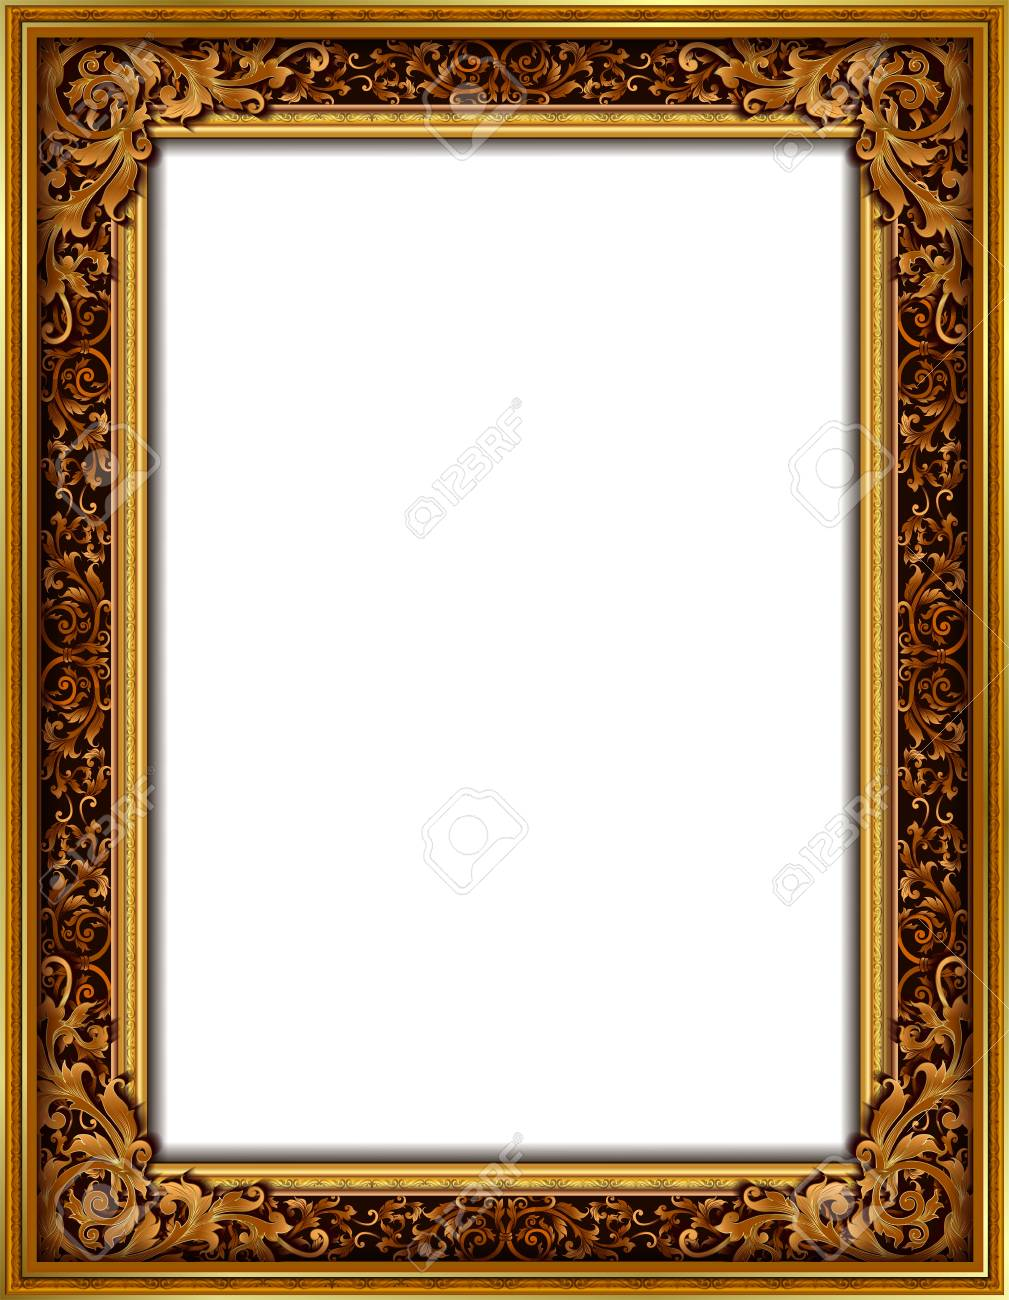 6b2a9a1c9119 Decorative Vintage Frames And Borders Set